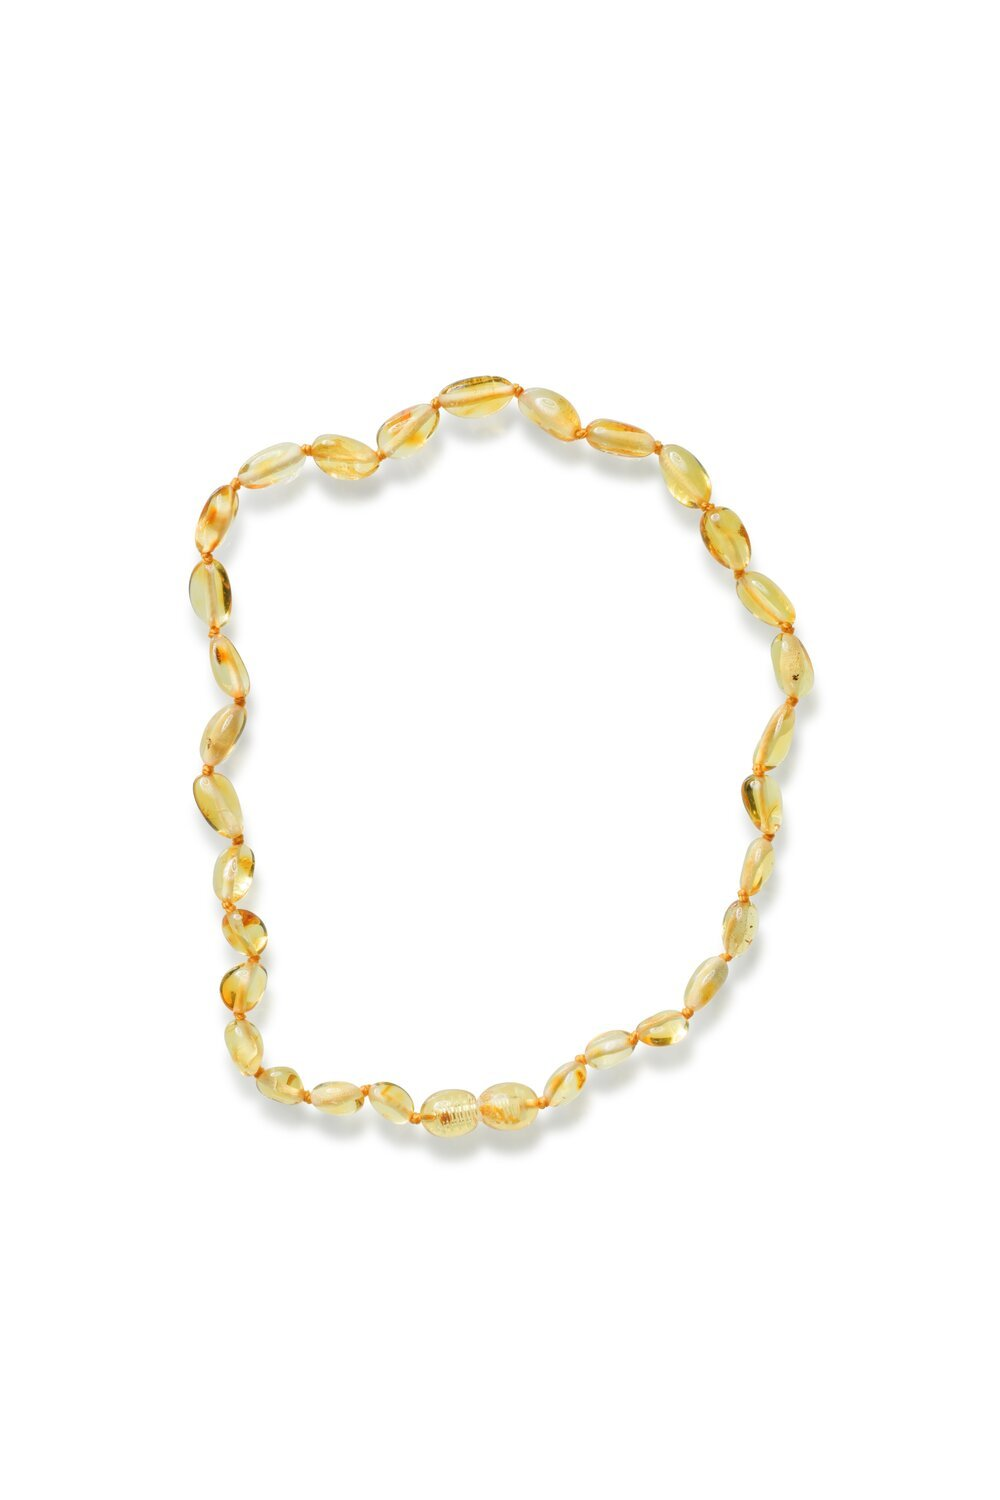 Polished Bean style Lemon Colour Baby Amber Necklace